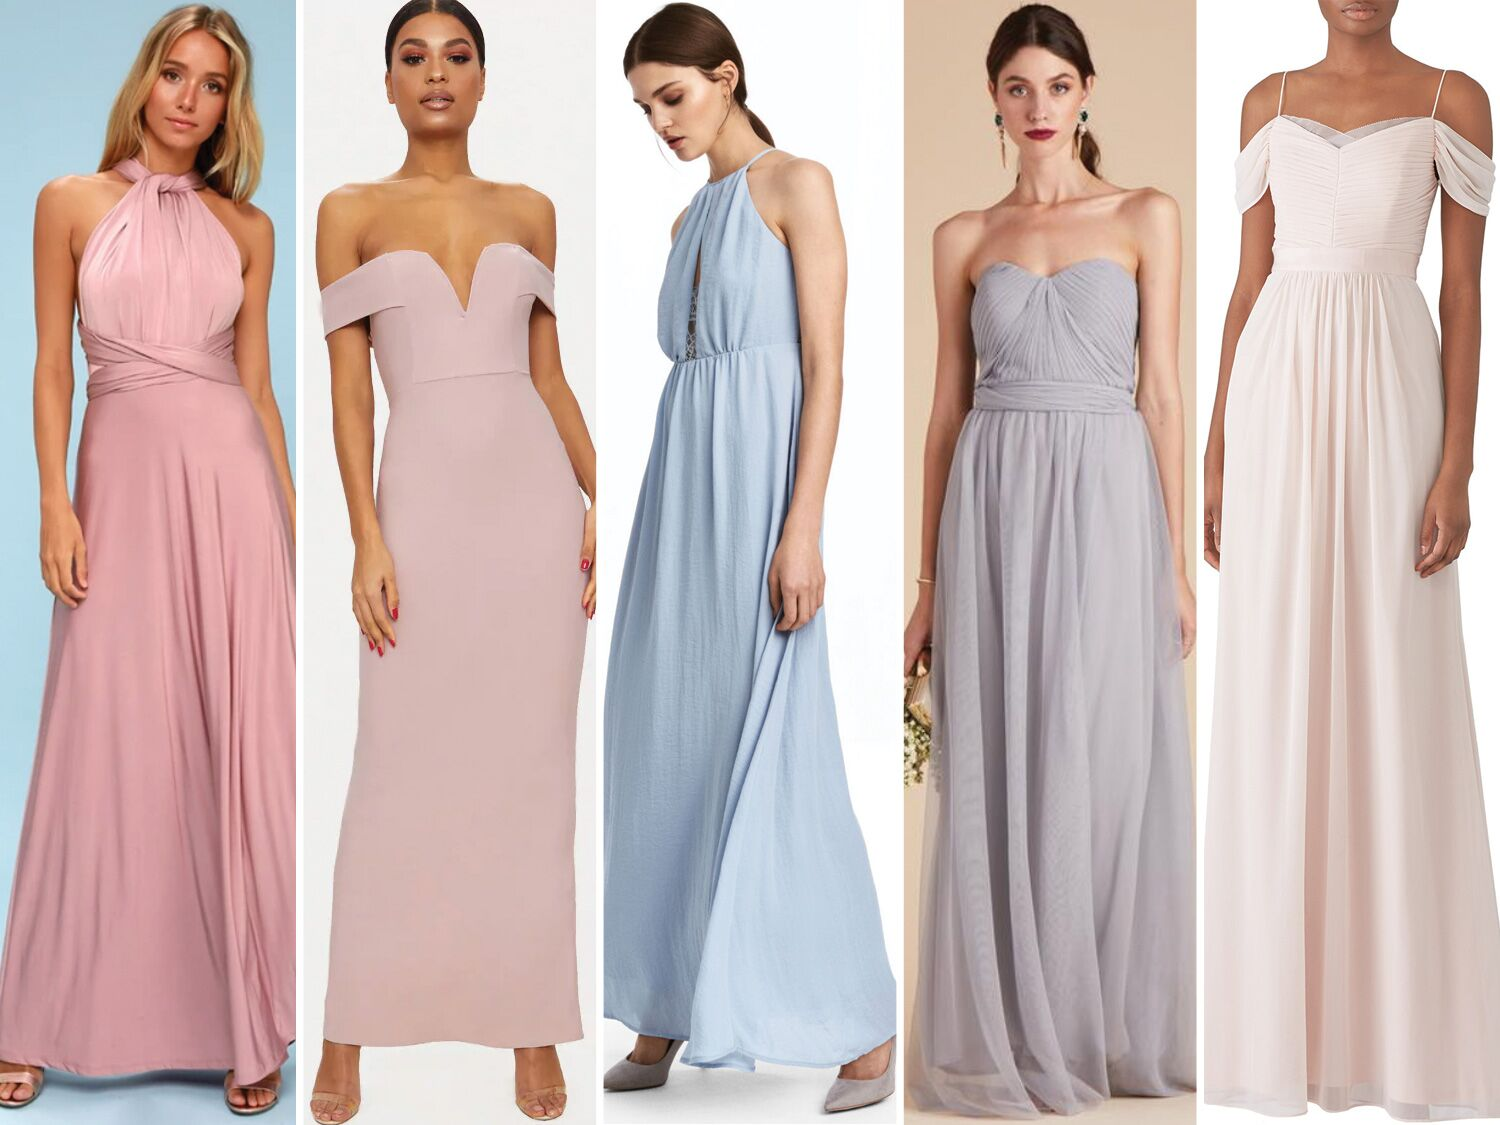 d42c73aa857 55 Affordable Bridesmaid Dresses That Don t Look Cheap